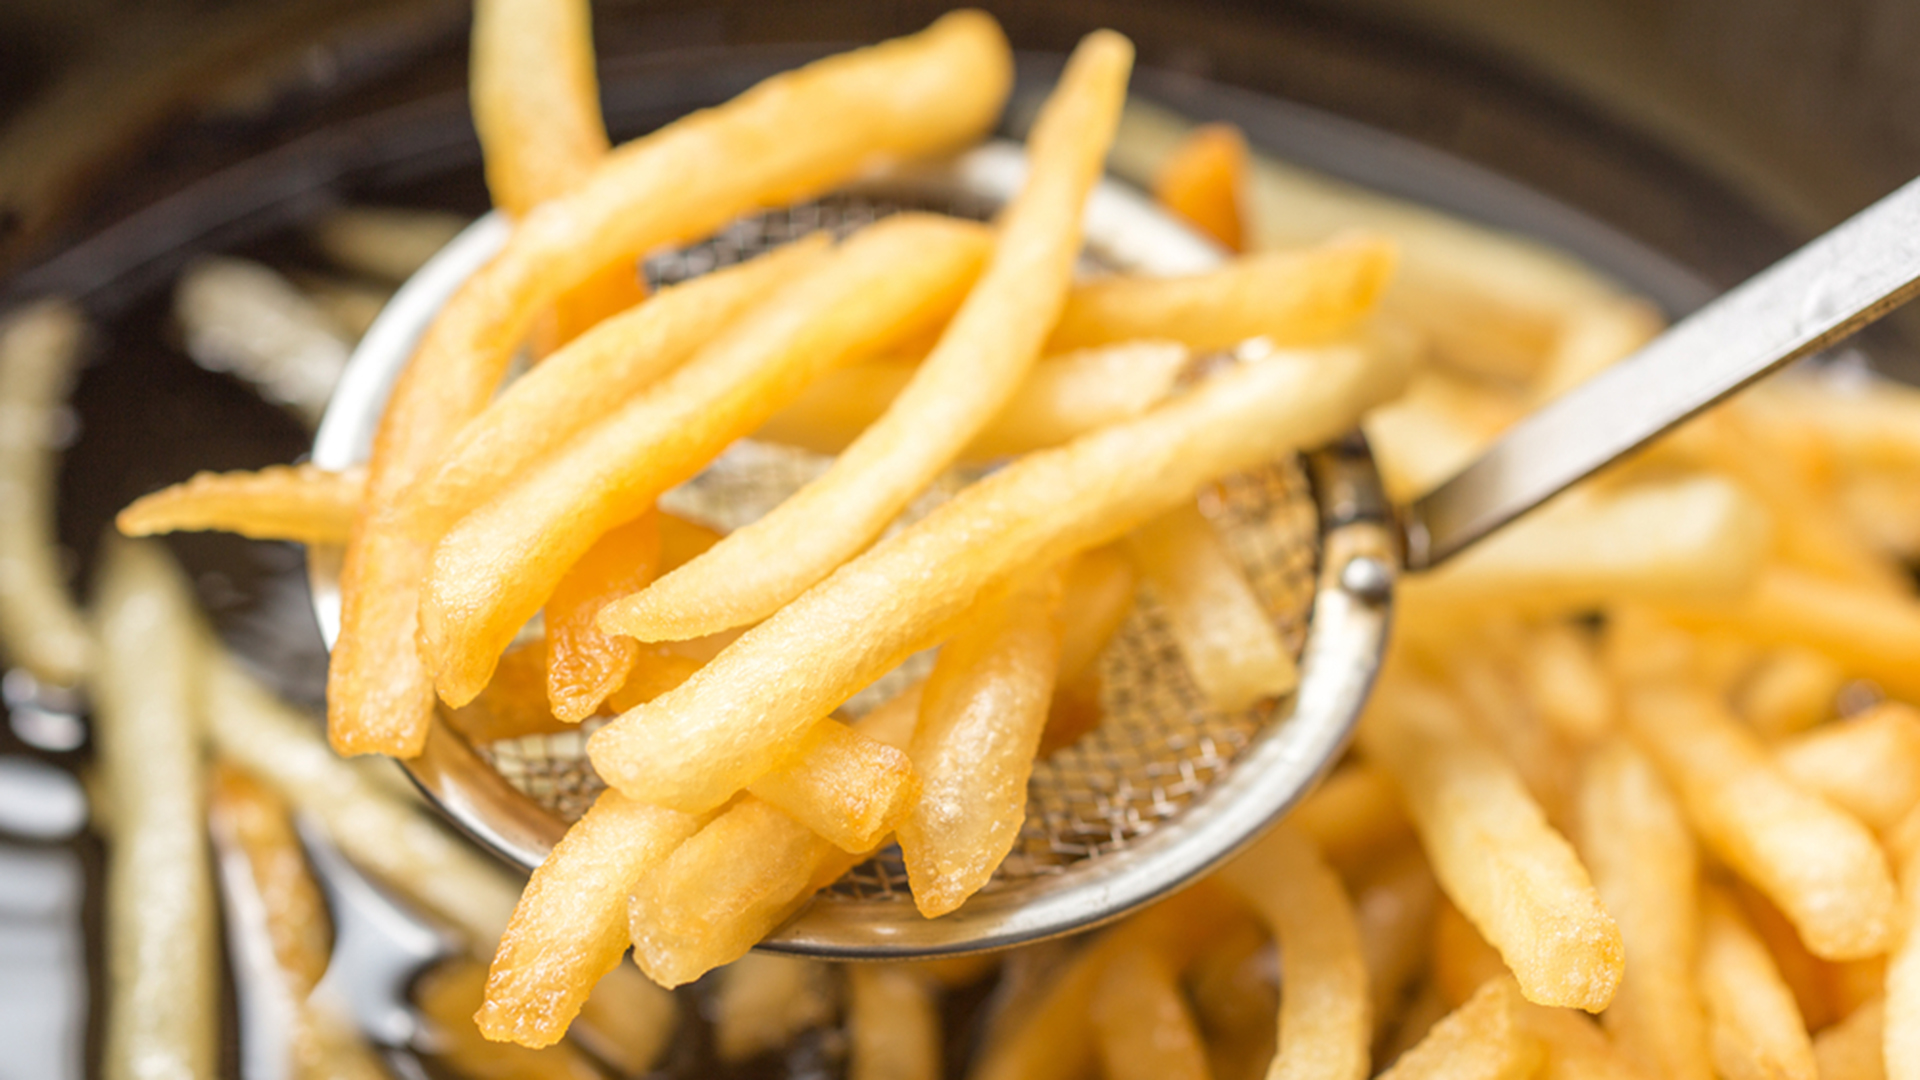 10 tips for deep frying at home like a pro